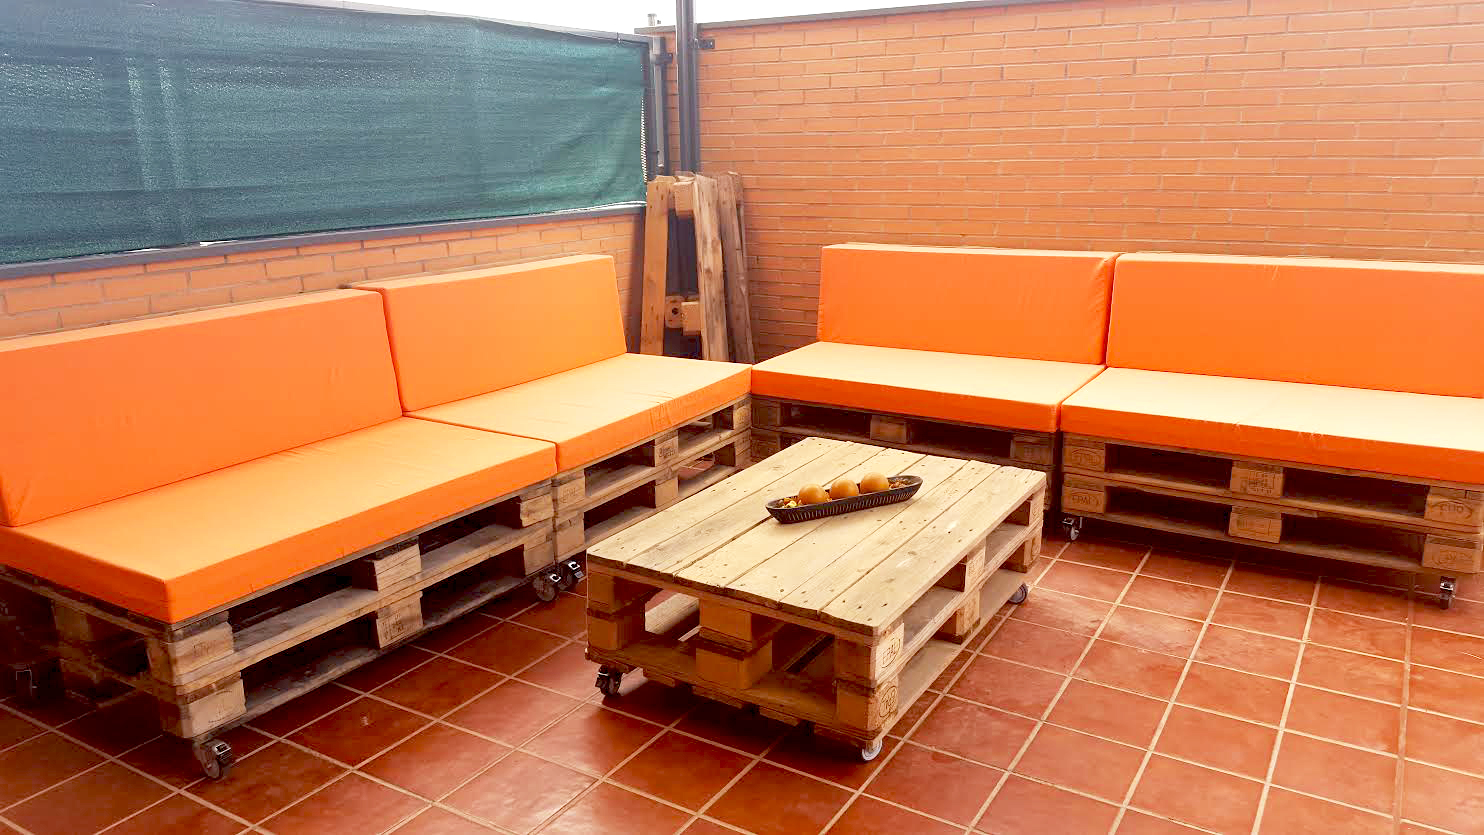 Hazte una zona chill out con palets vivienda saludable for Decoracion jardin chill out